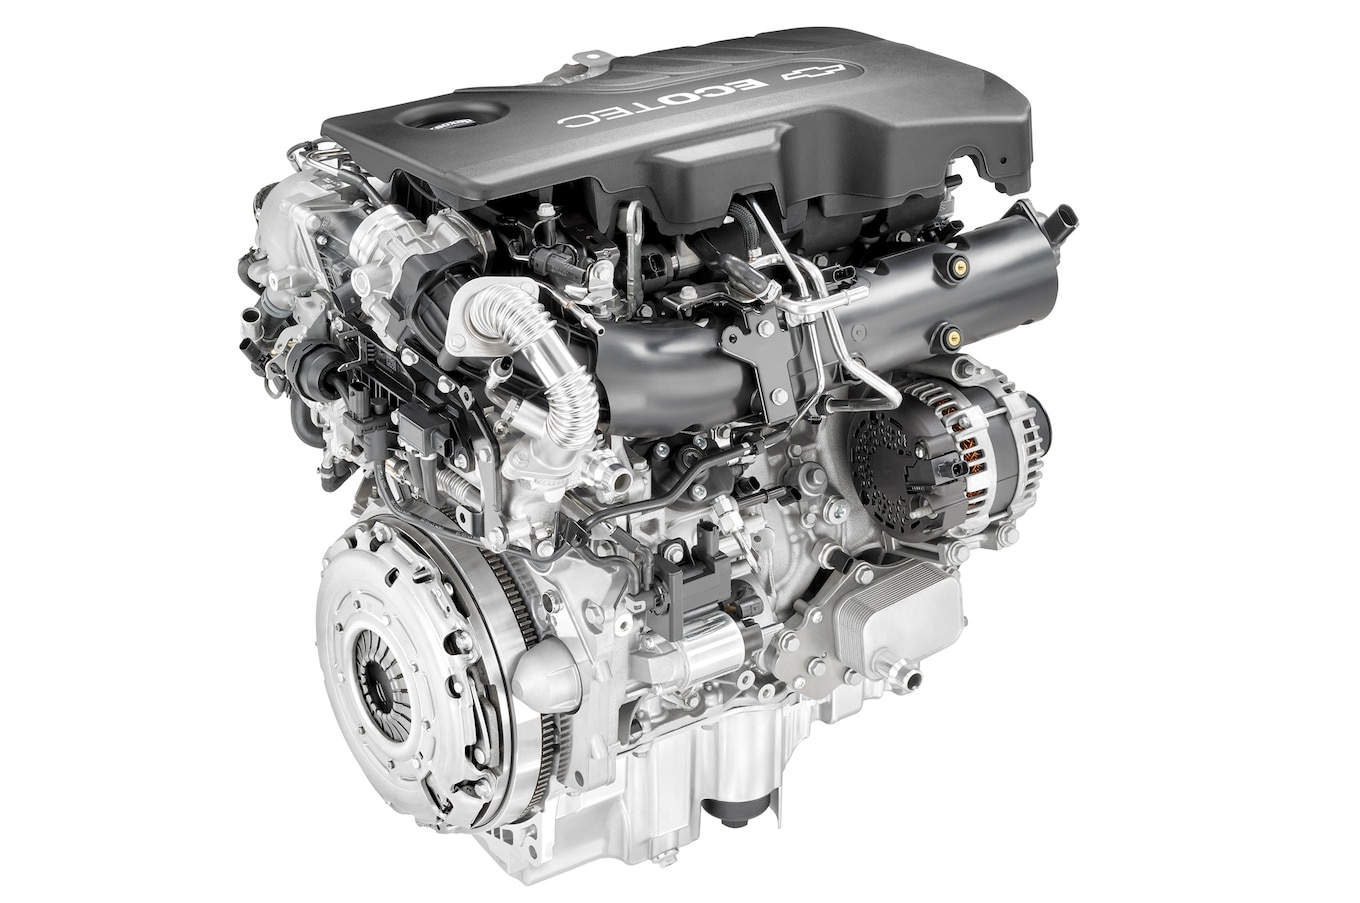 hight resolution of tech deep dive gm 1 6 liter lh7 turbodiesel